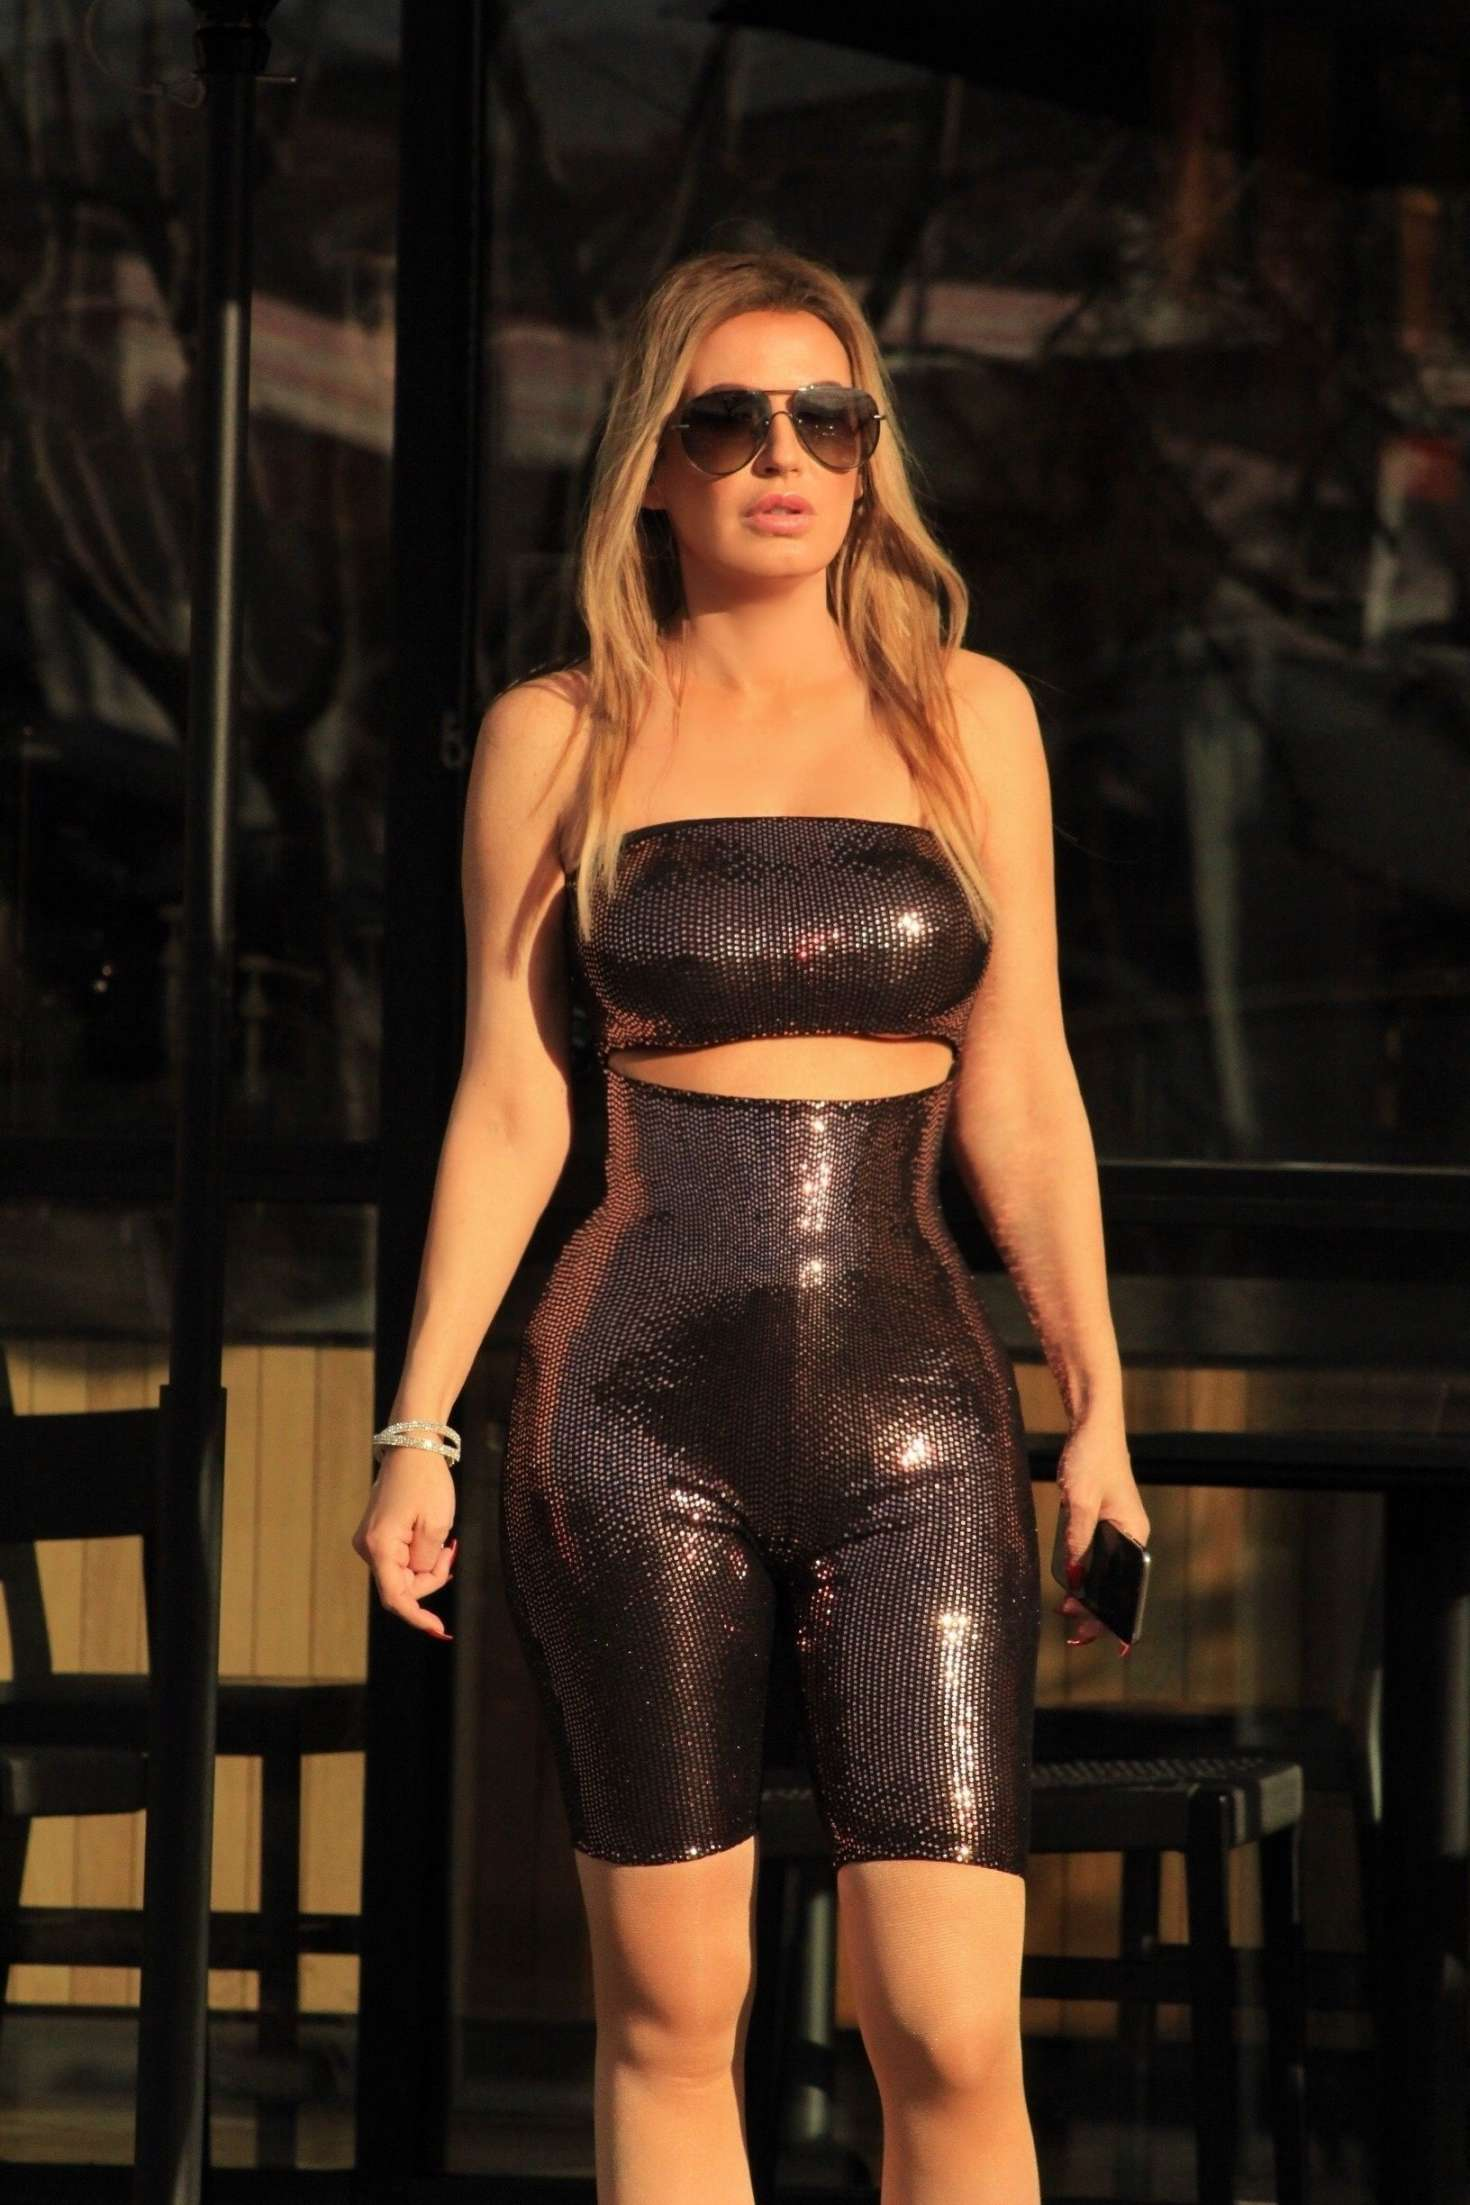 Ana Braga at a Starbucks in Los Angeles